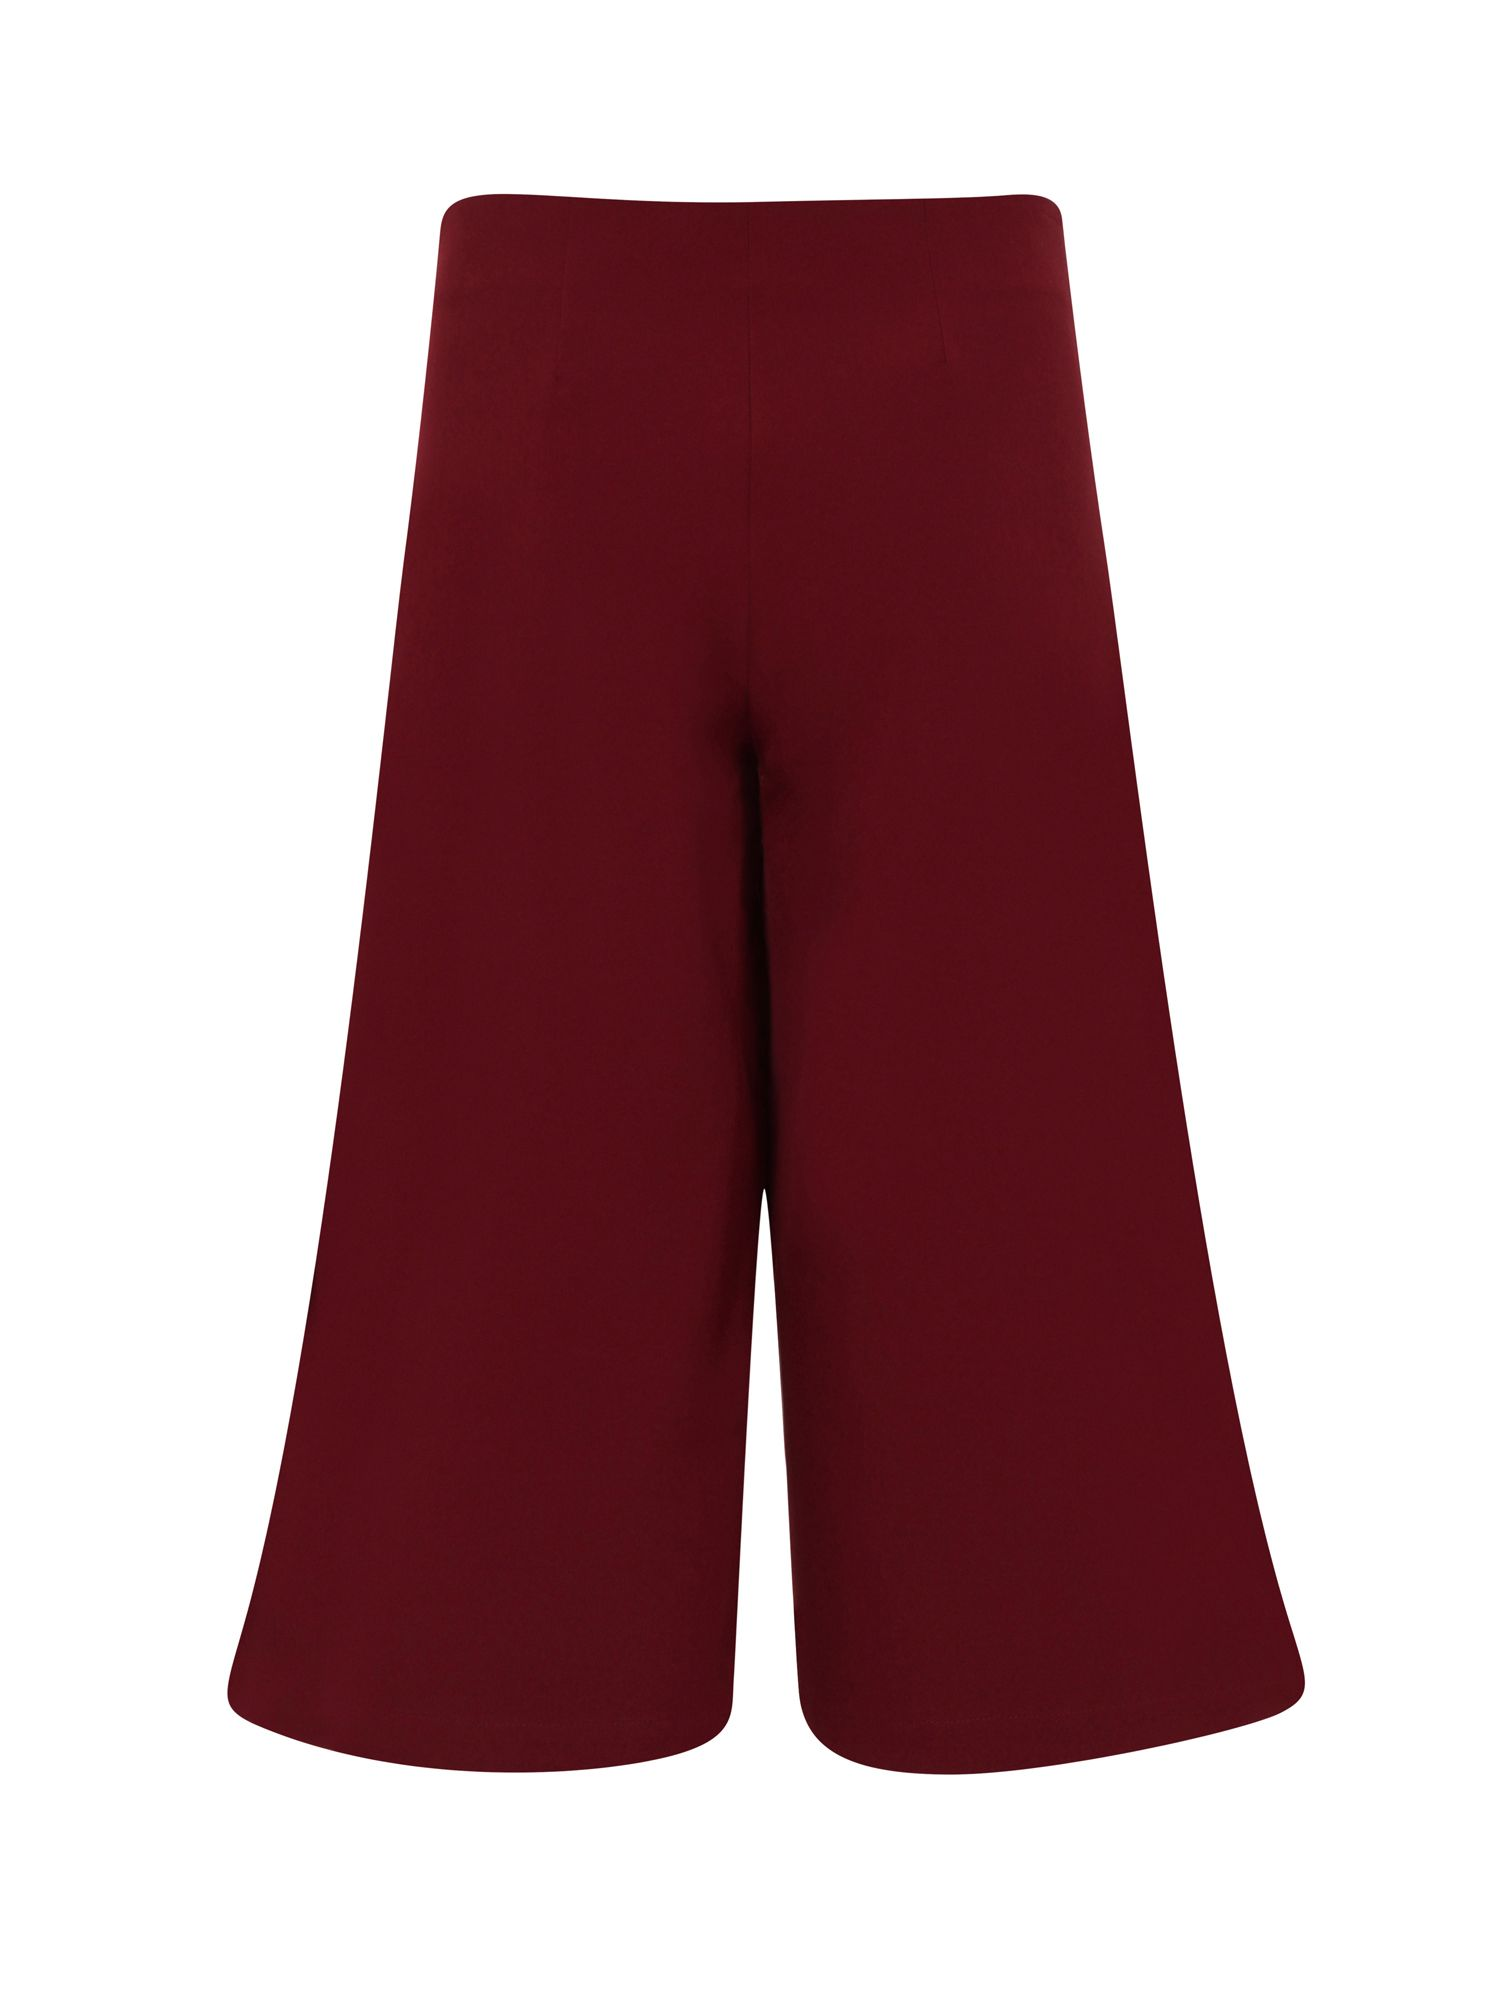 HotSquash Easycare Culottes in Clever Fabric, Red